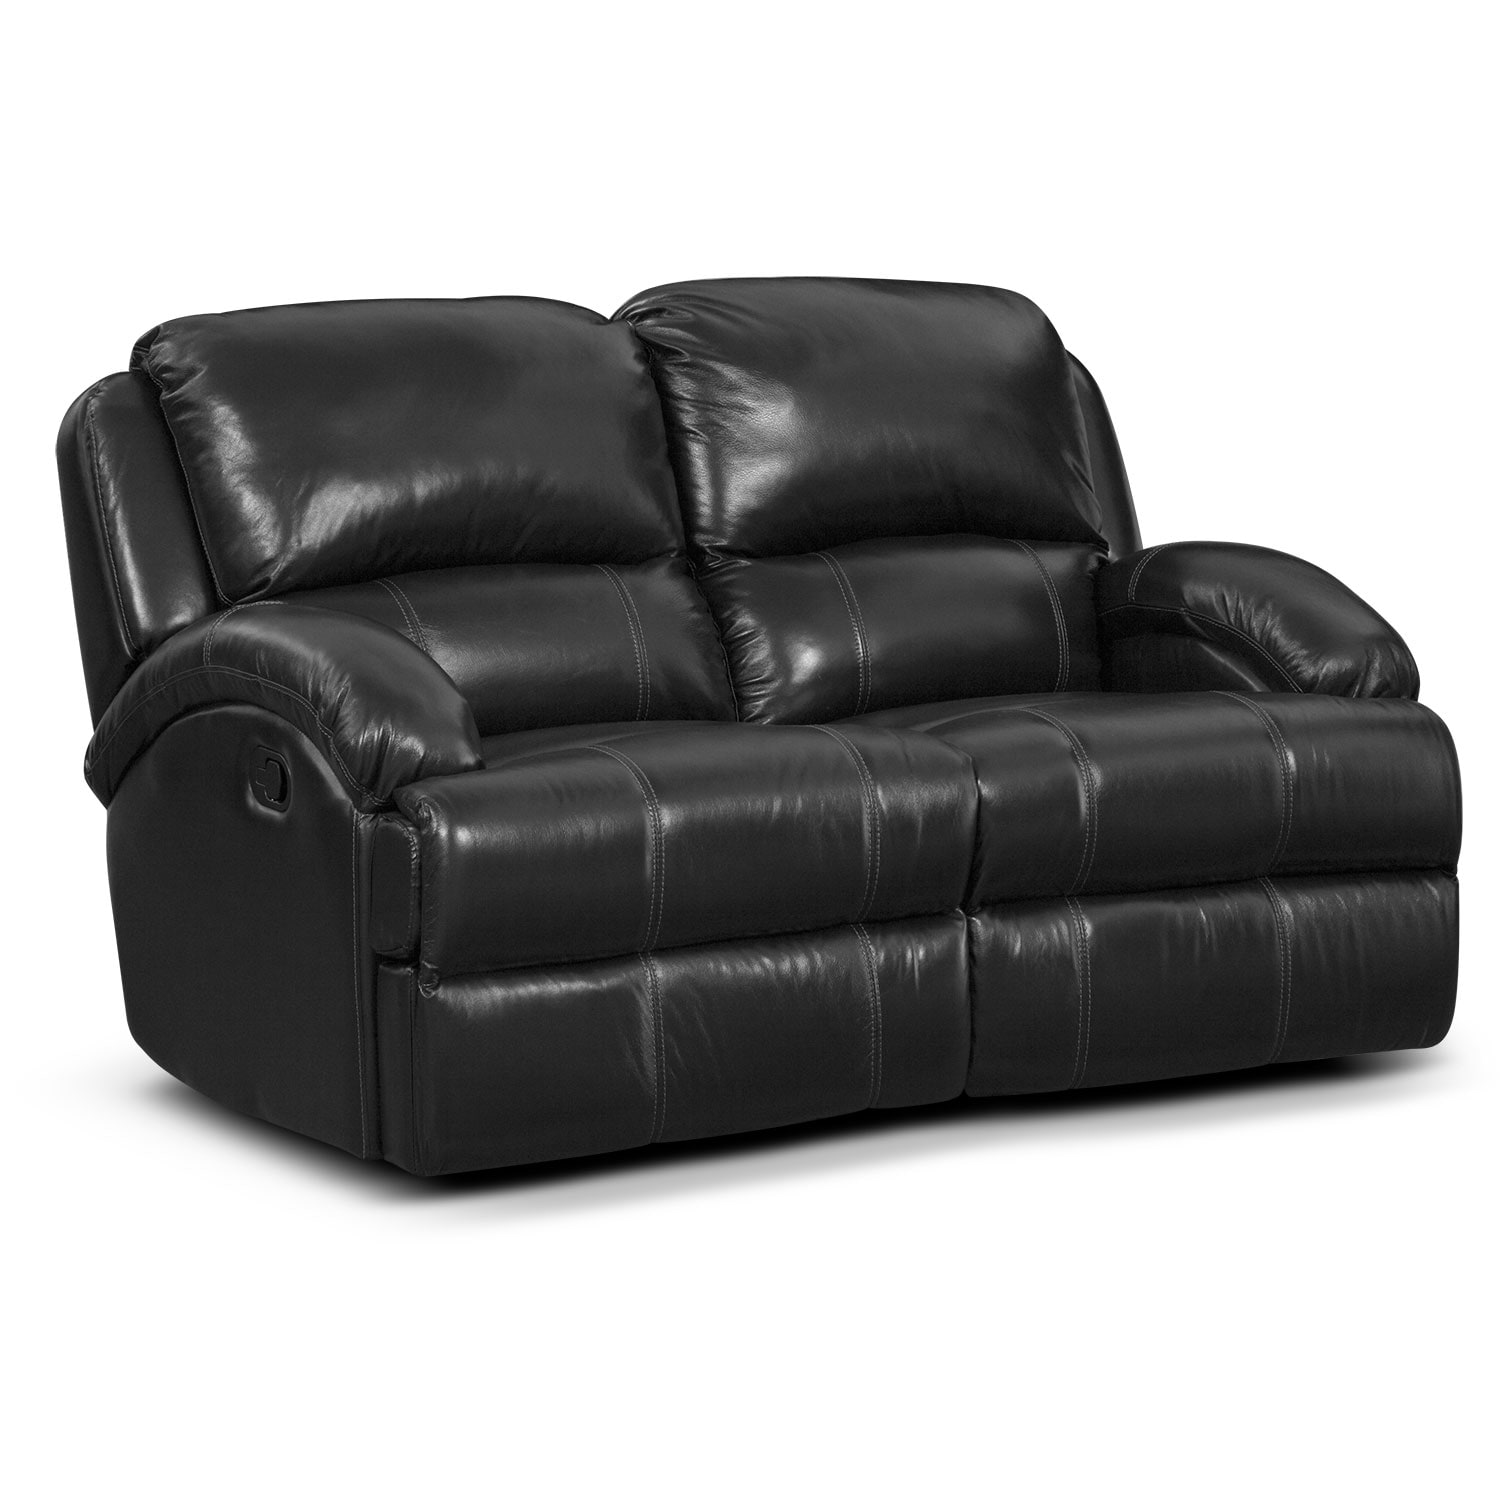 Nolan Dual Reclining Loveseat - Black